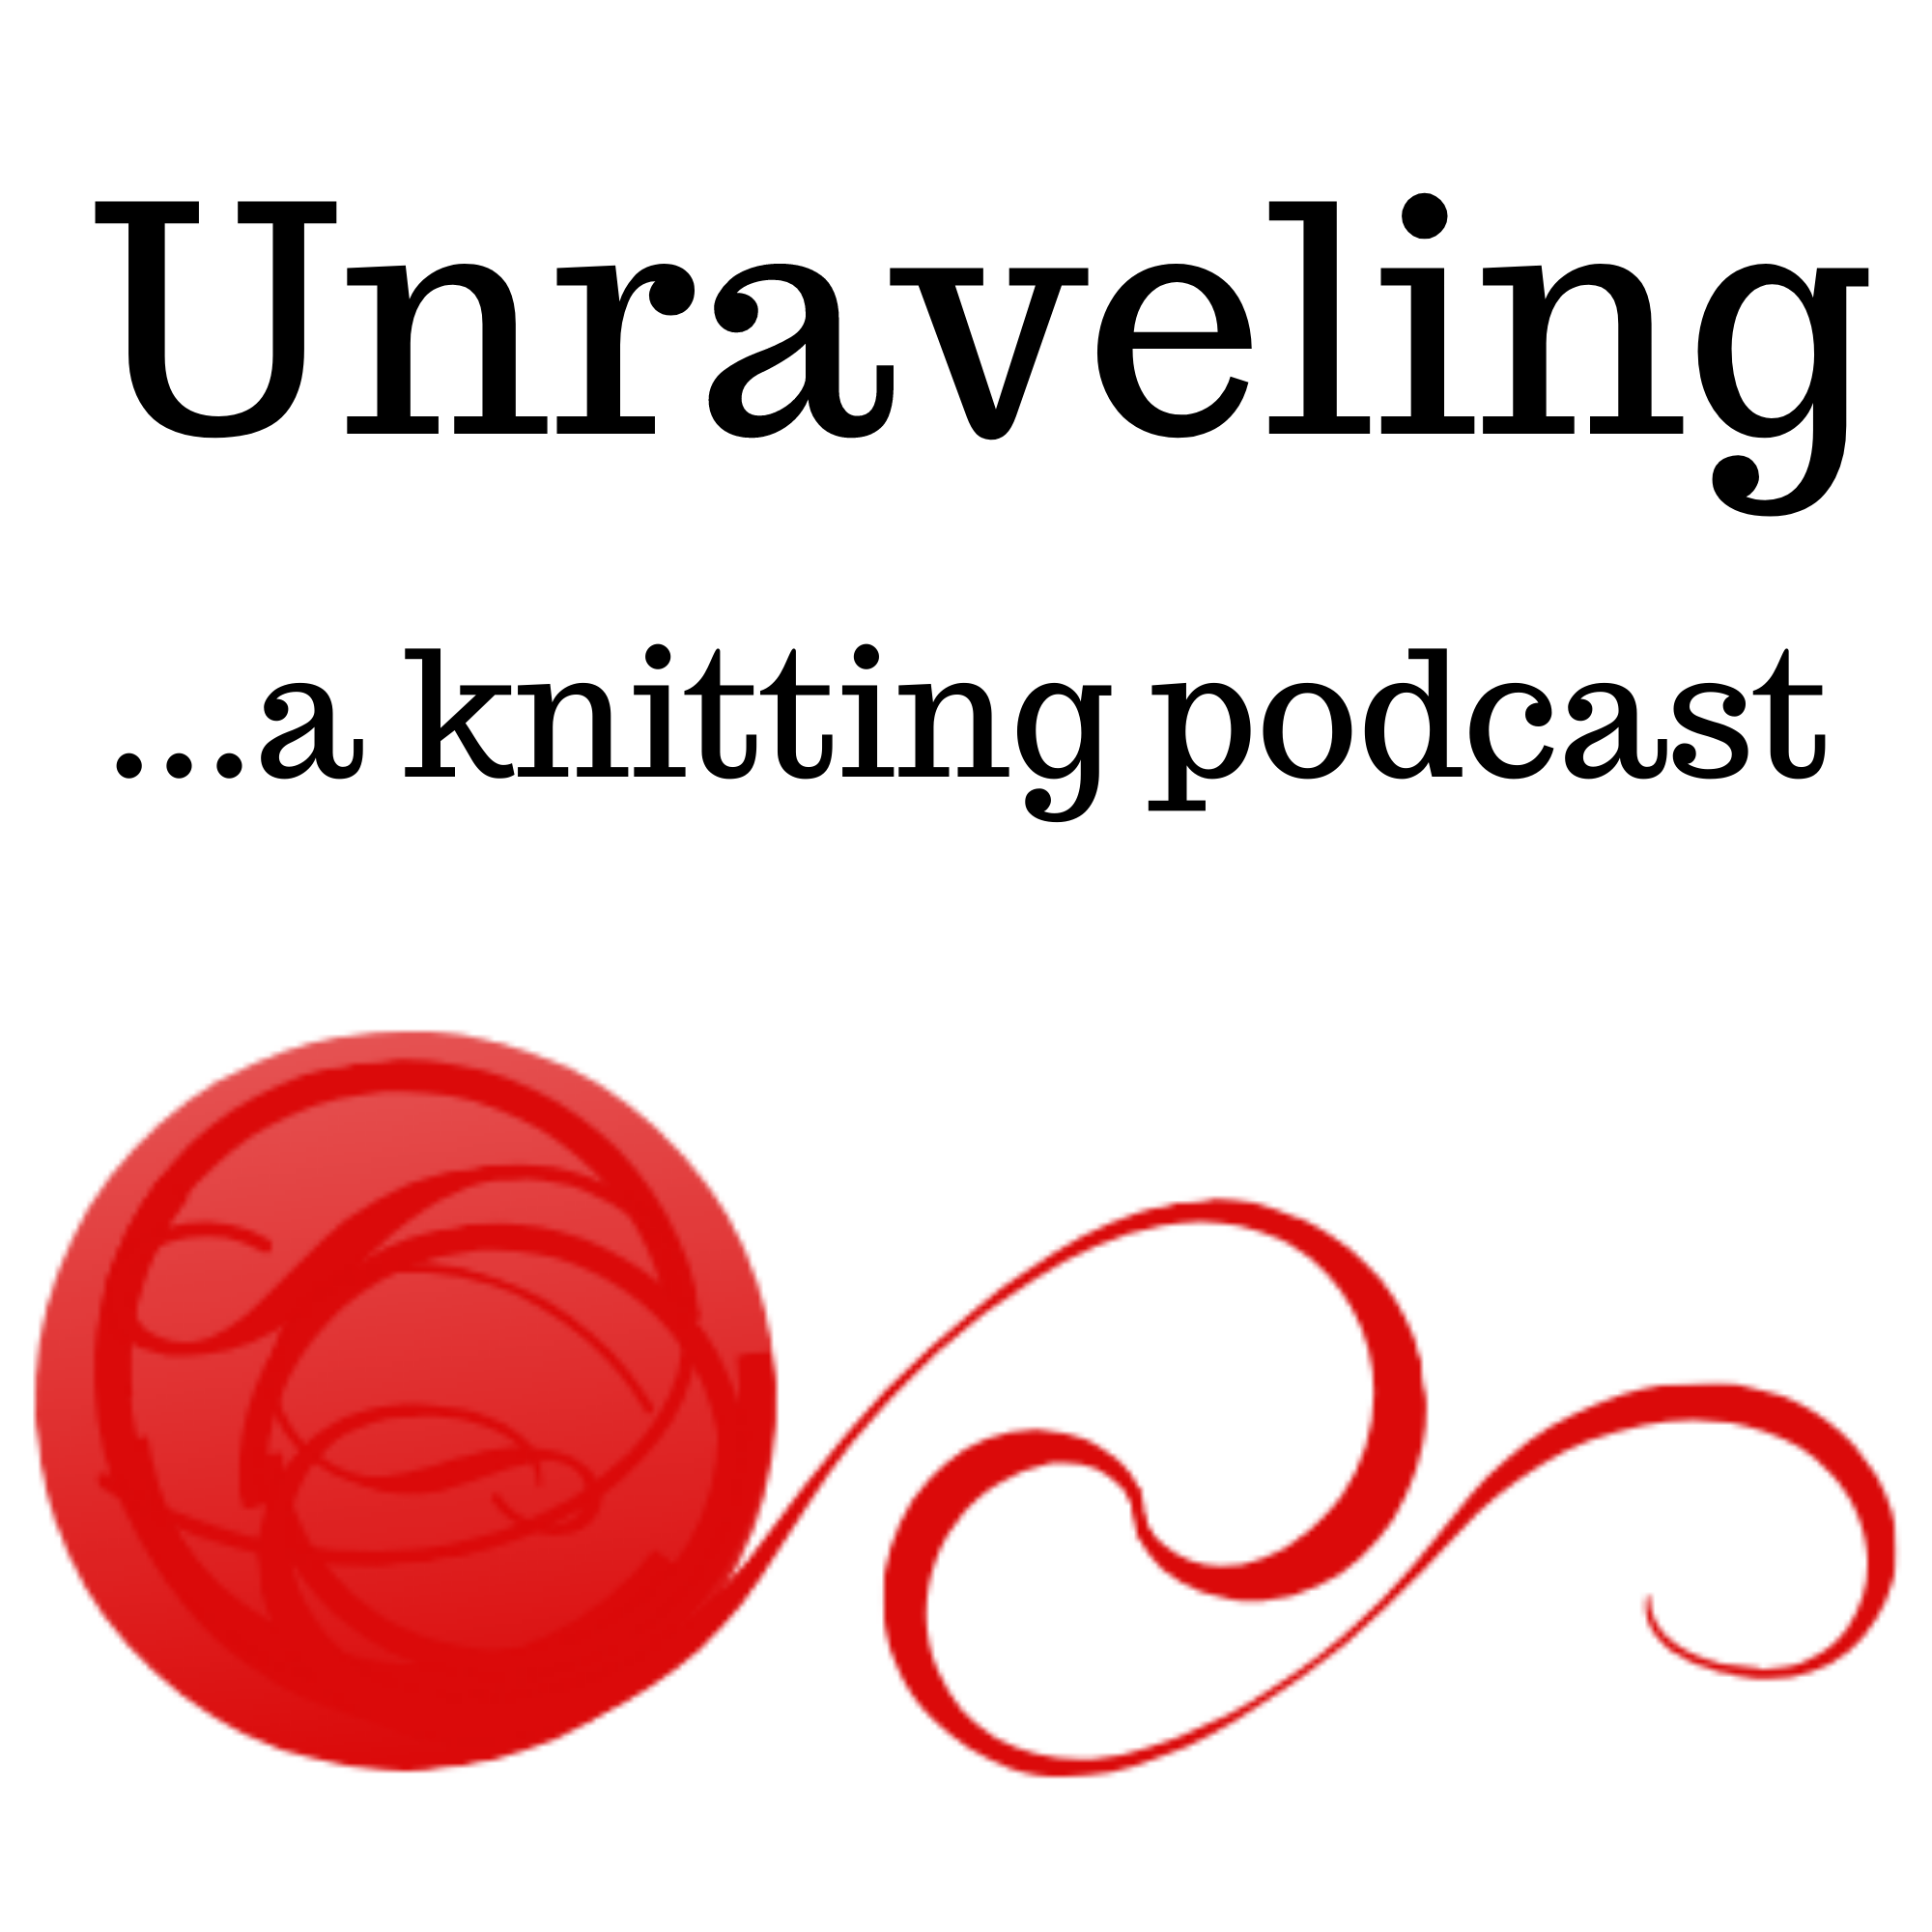 Unraveling ...a knitting podcast